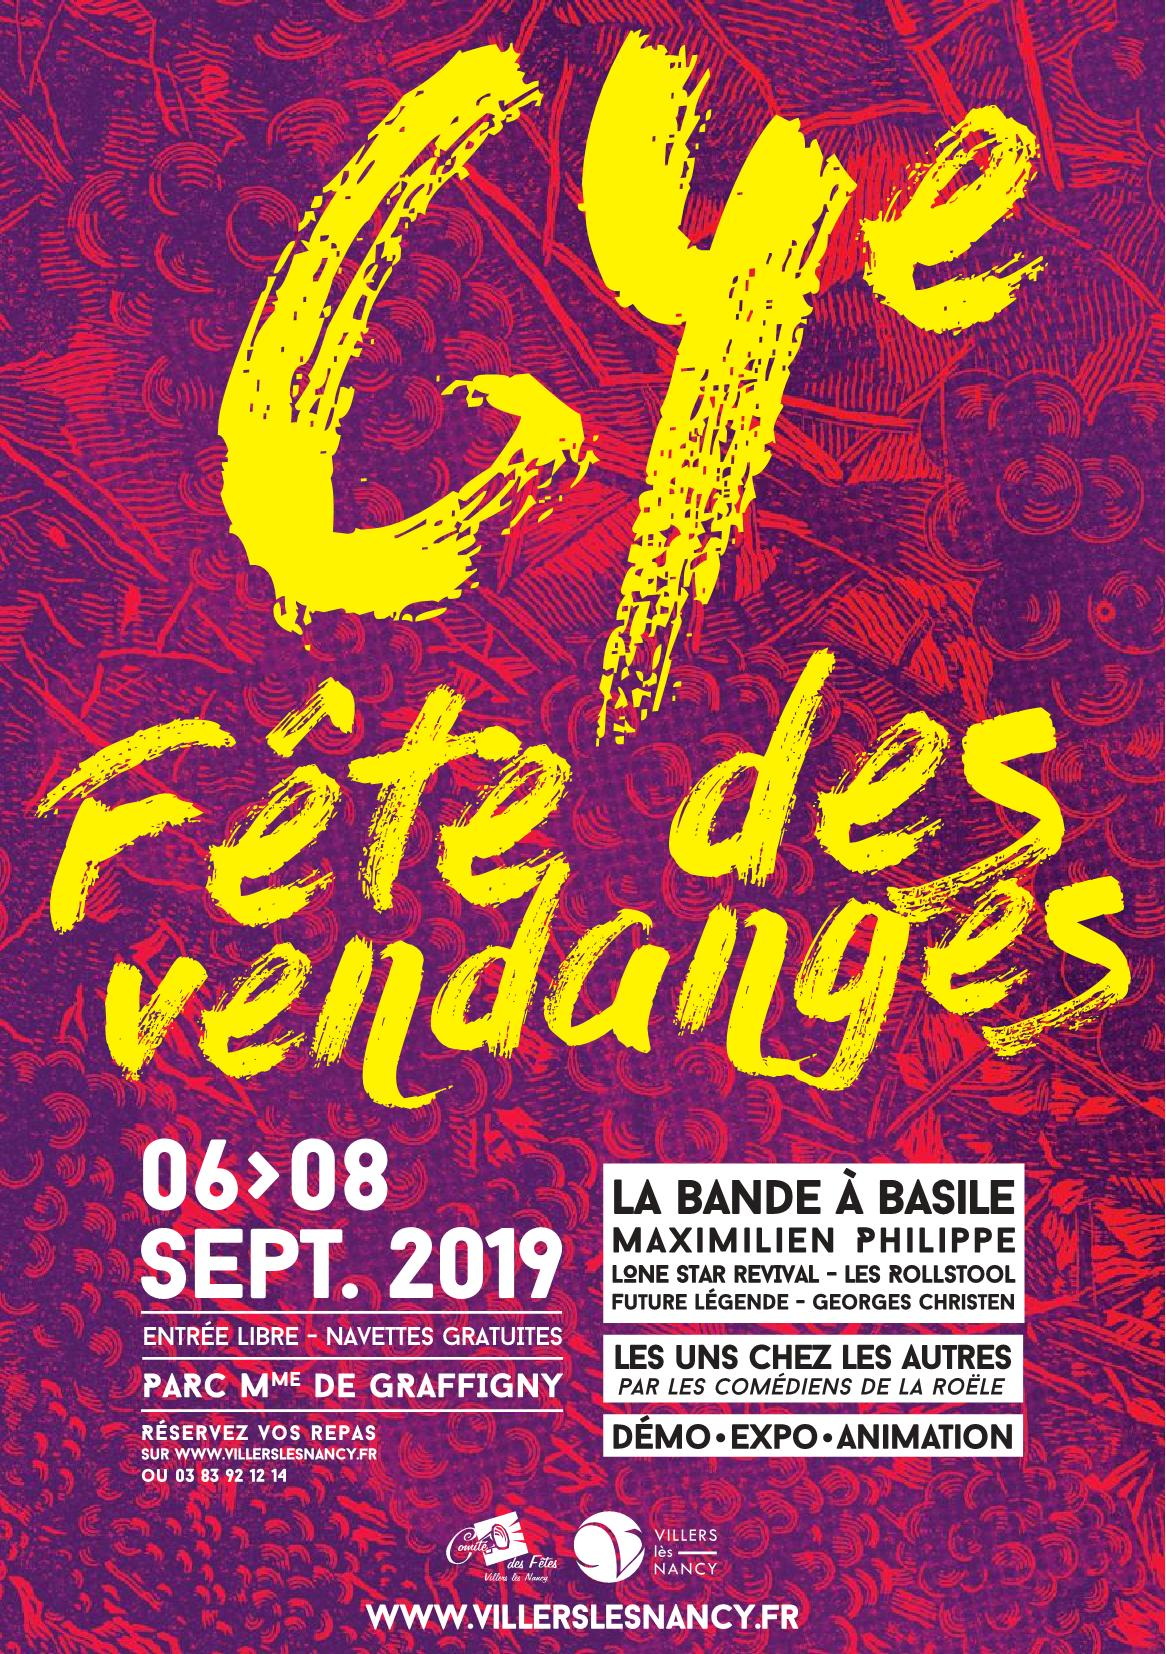 Fête des Vendanges 2019 Villers-lès-Nancy Demo Expo Animation